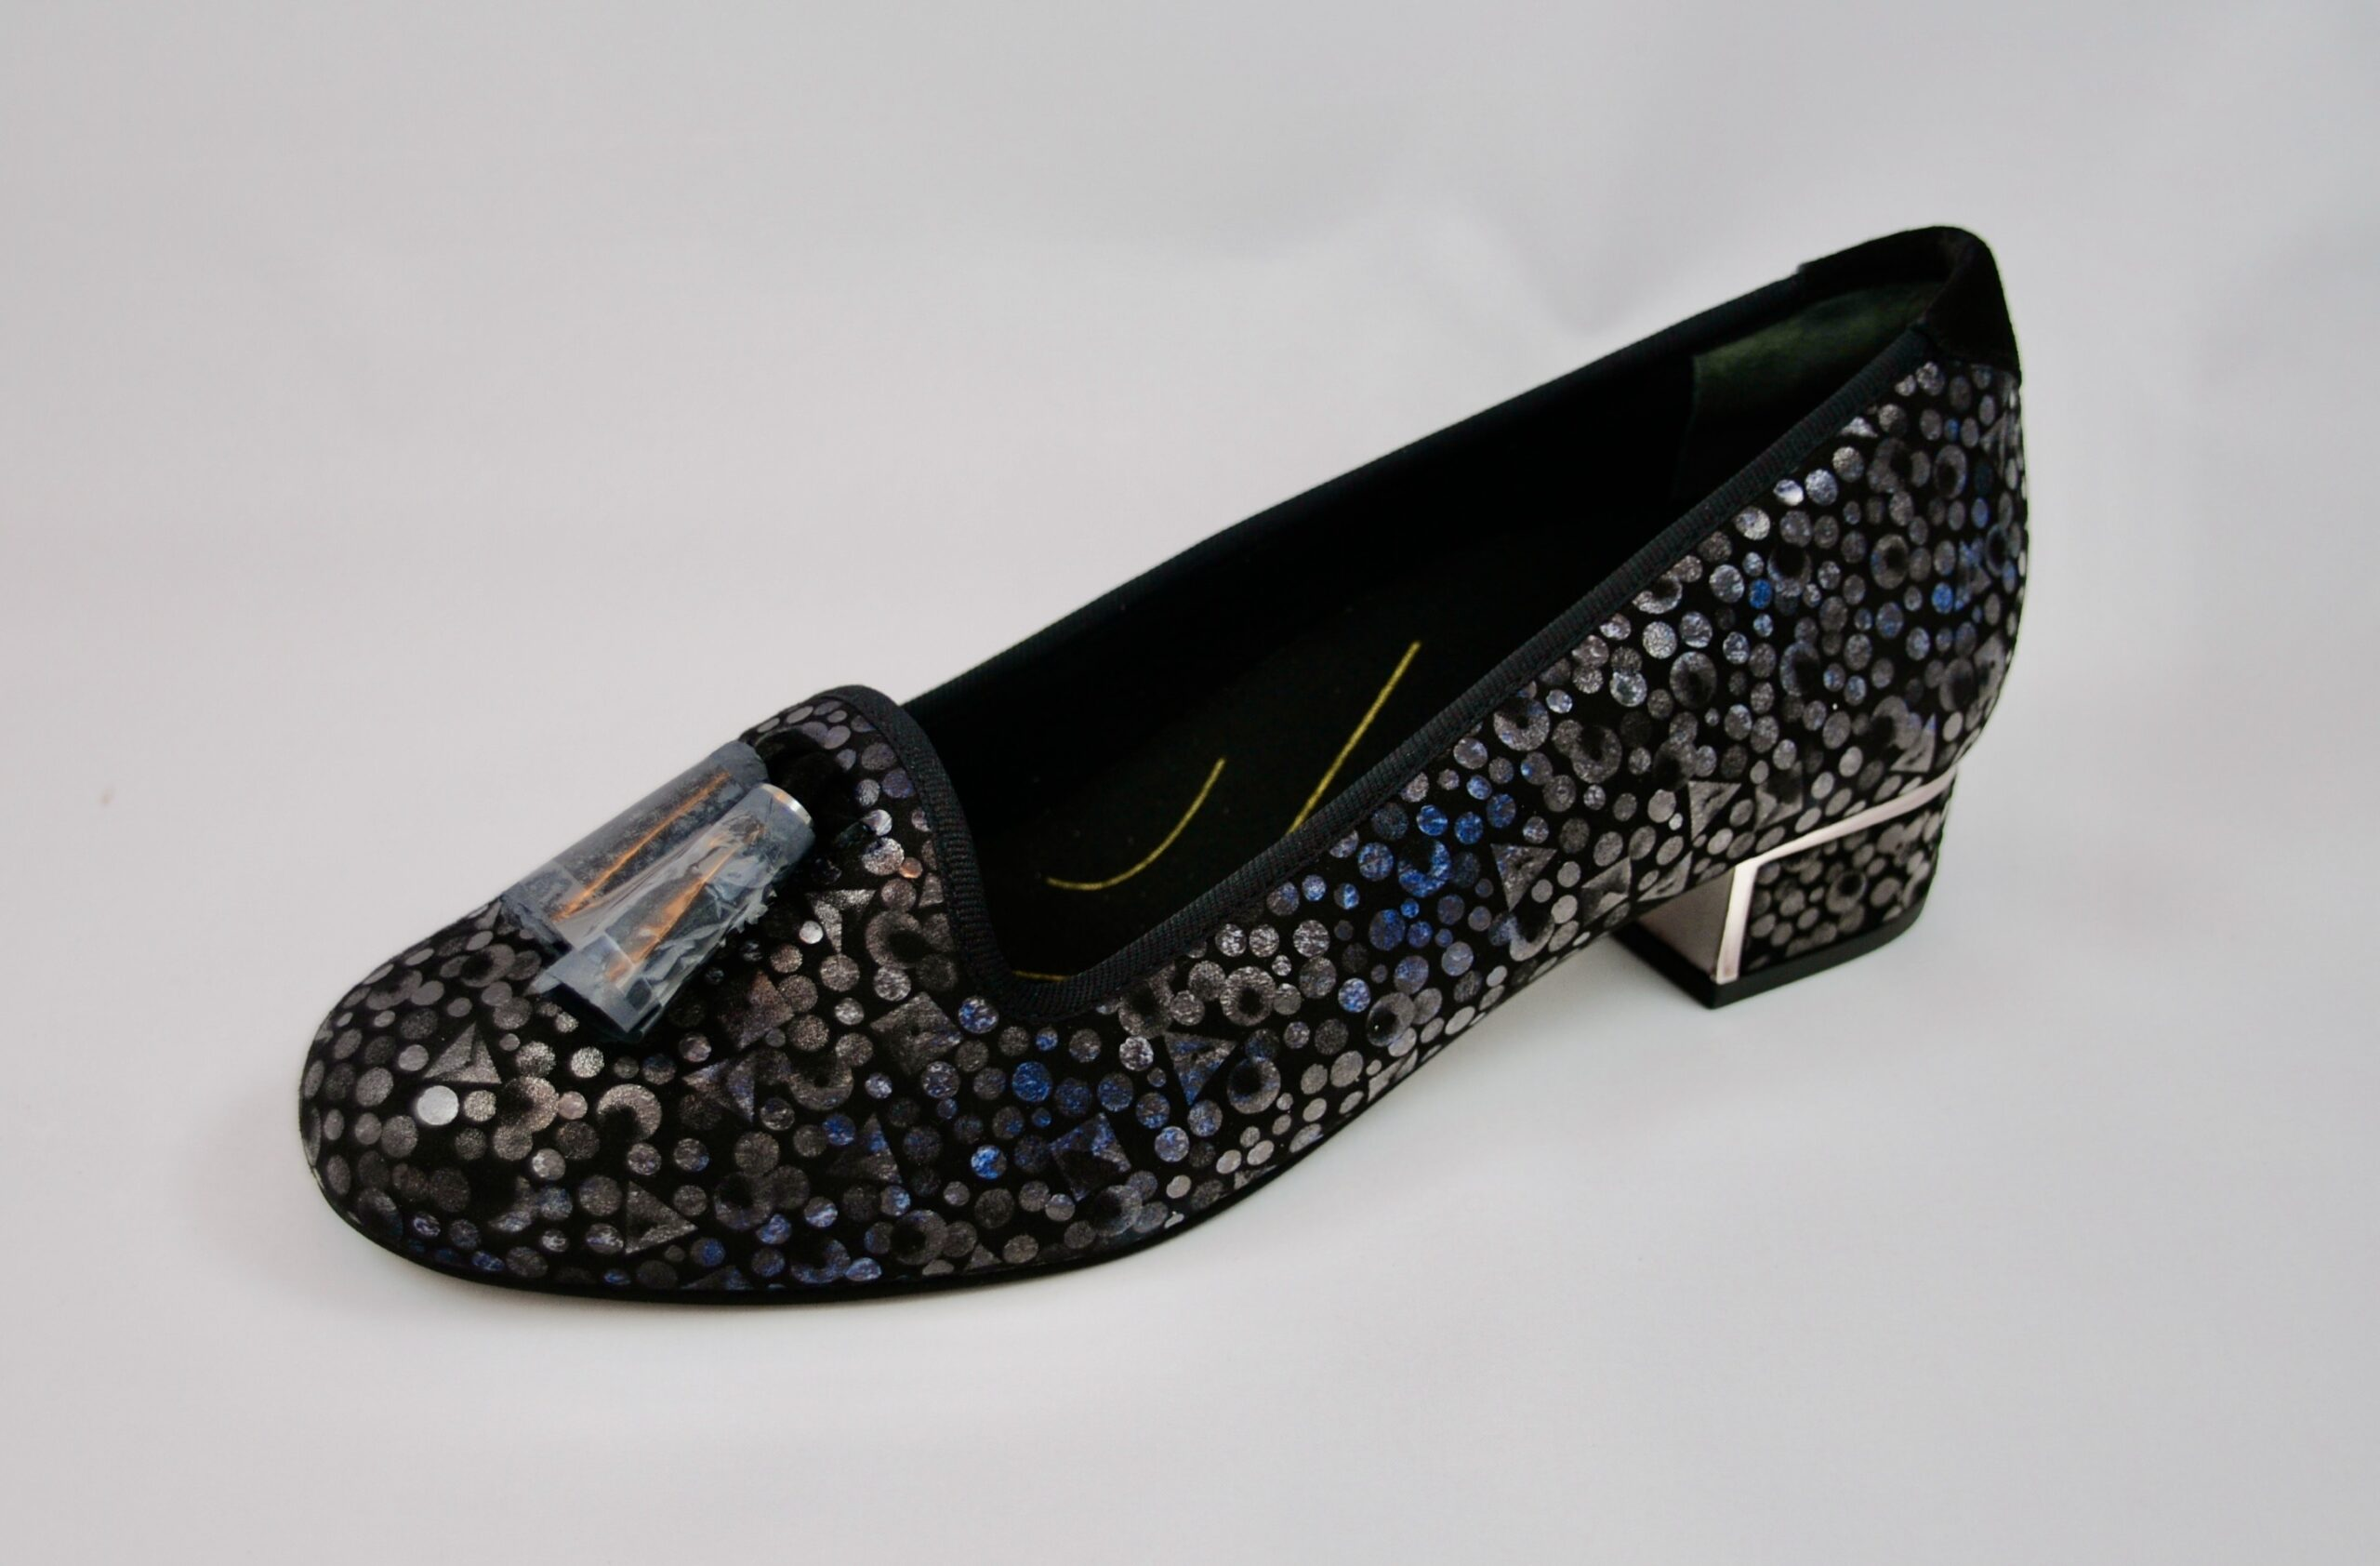 Van Dal Thurlo Black Sequin Court Shoe